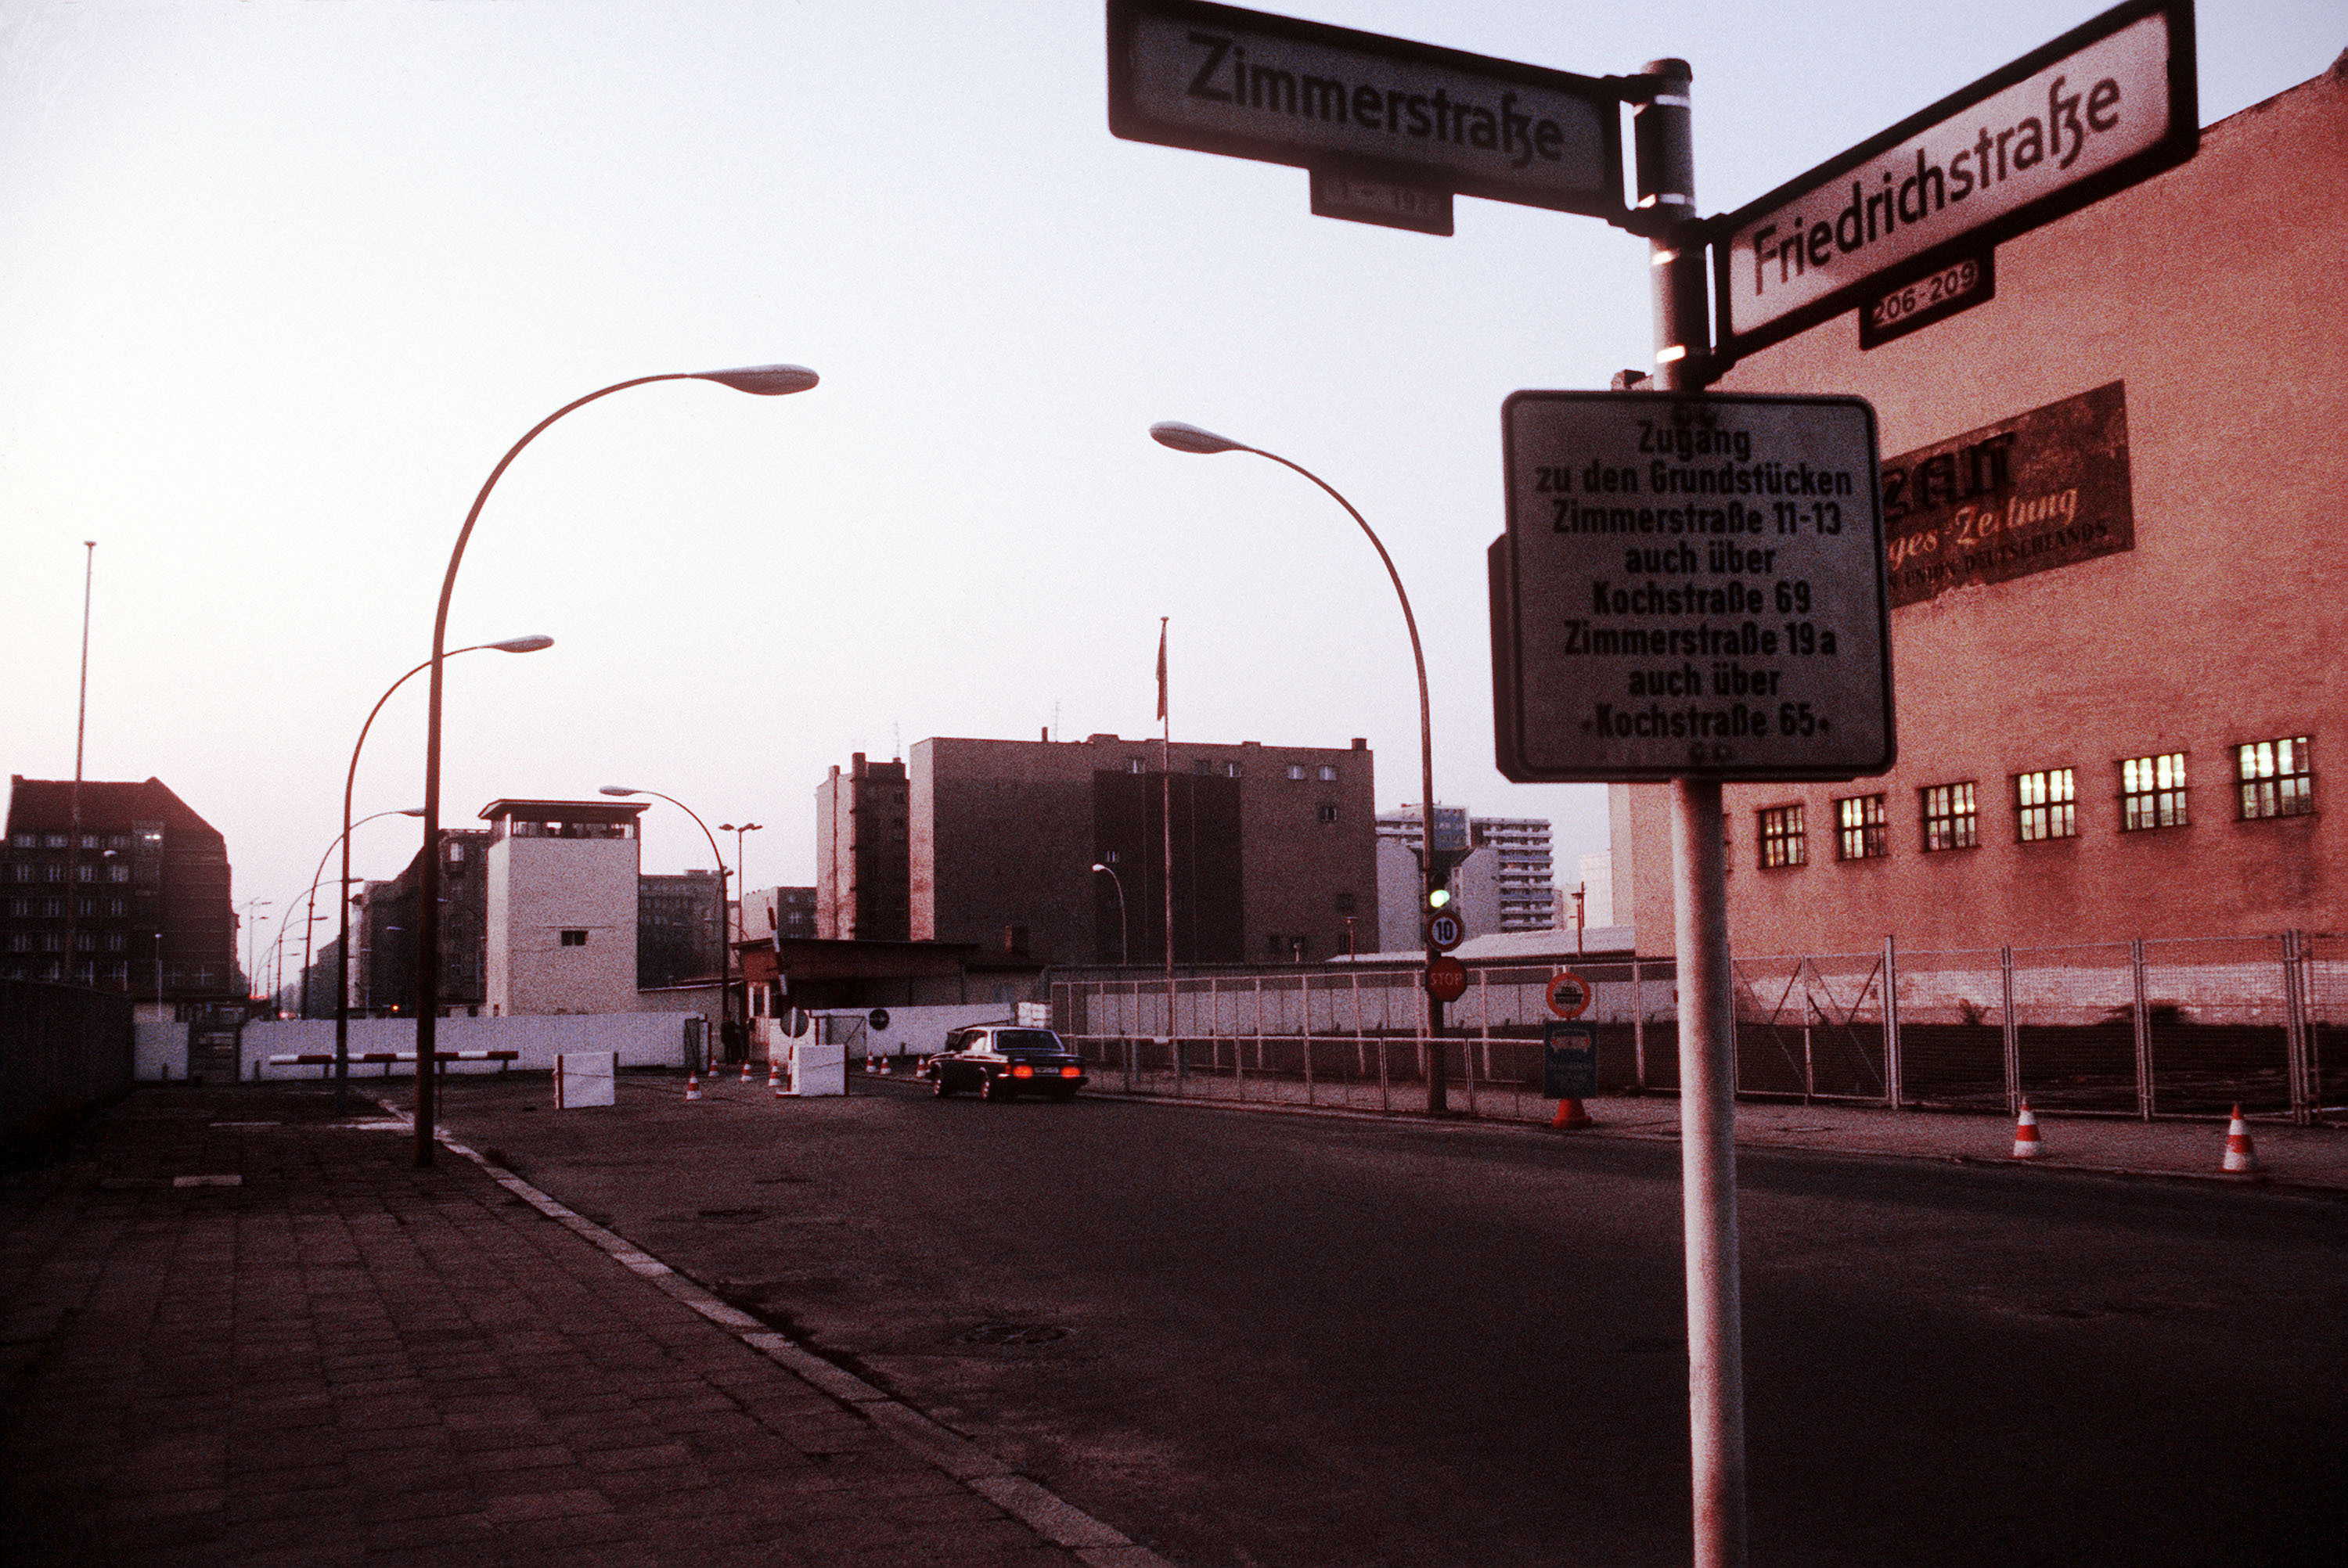 A view of Checkpoint Charlie, the border crossing for diplomats and Allied personnel between East Germany and West Germany